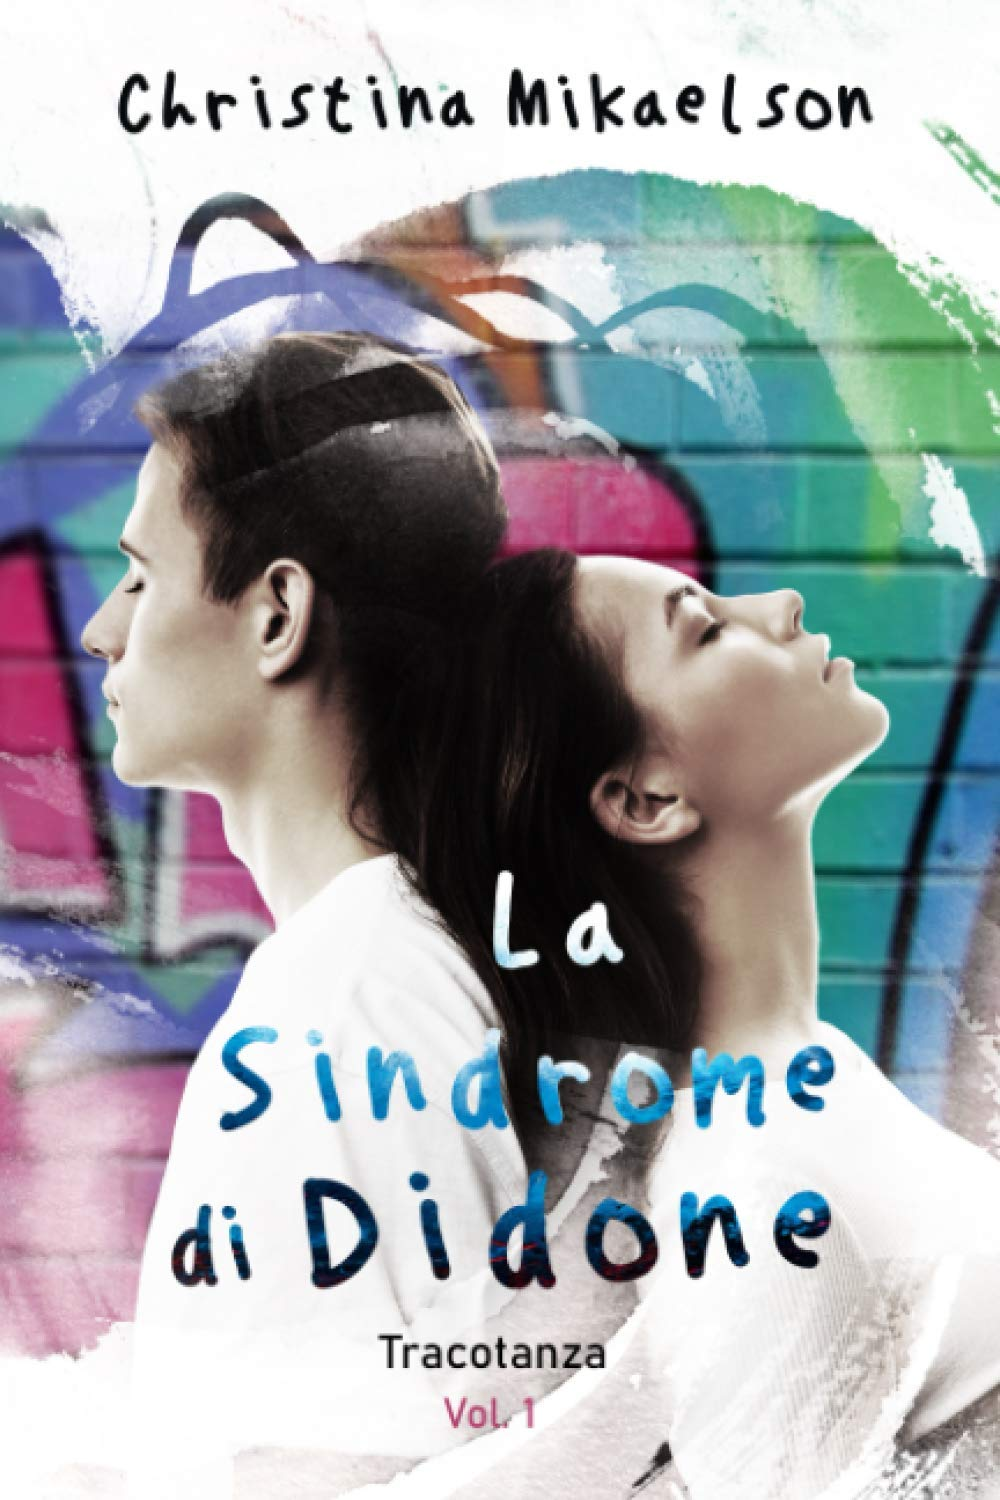 La Sindrome di Didone (Vol.1): Tracotanza: Amazon.it: Mikaelson, Christina,  Rose, Alexandra, Angelice Graphics, Angelice: Libri